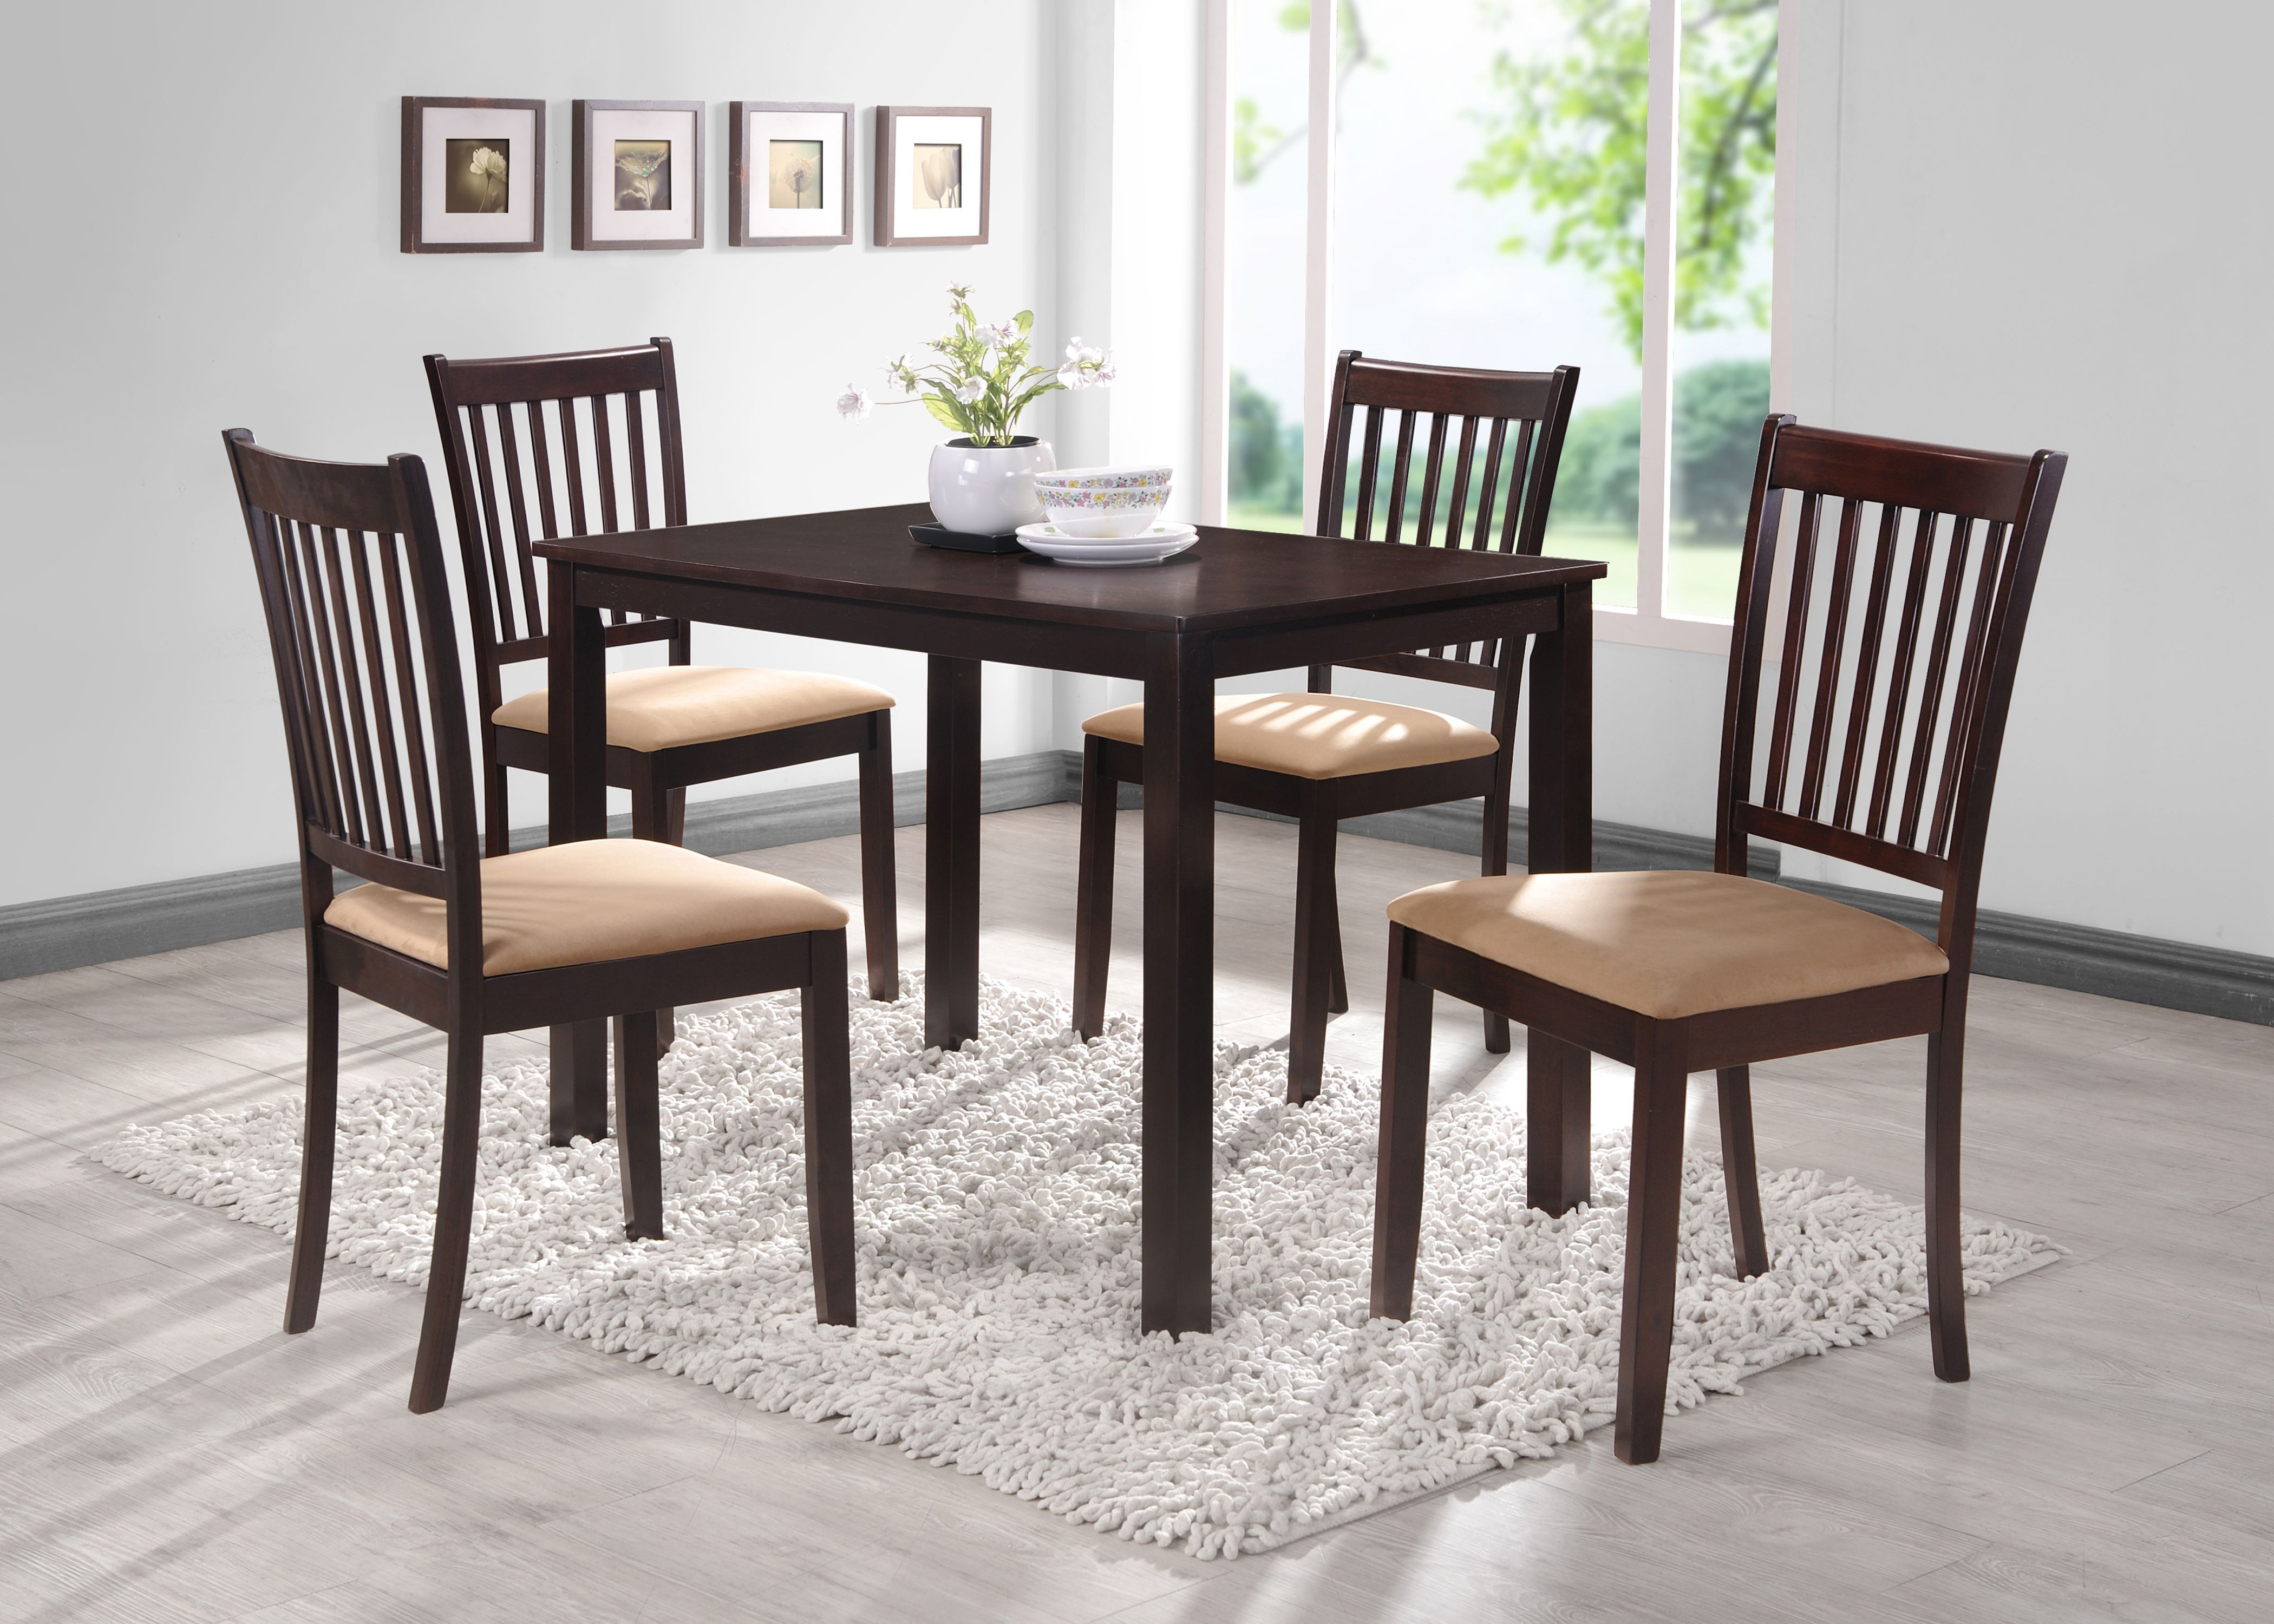 Townsend 5 Piece Kitchen Dining Set Cappuccino Wood 43 Rectangular Contemporary Table 4 Chairs Walmart Com